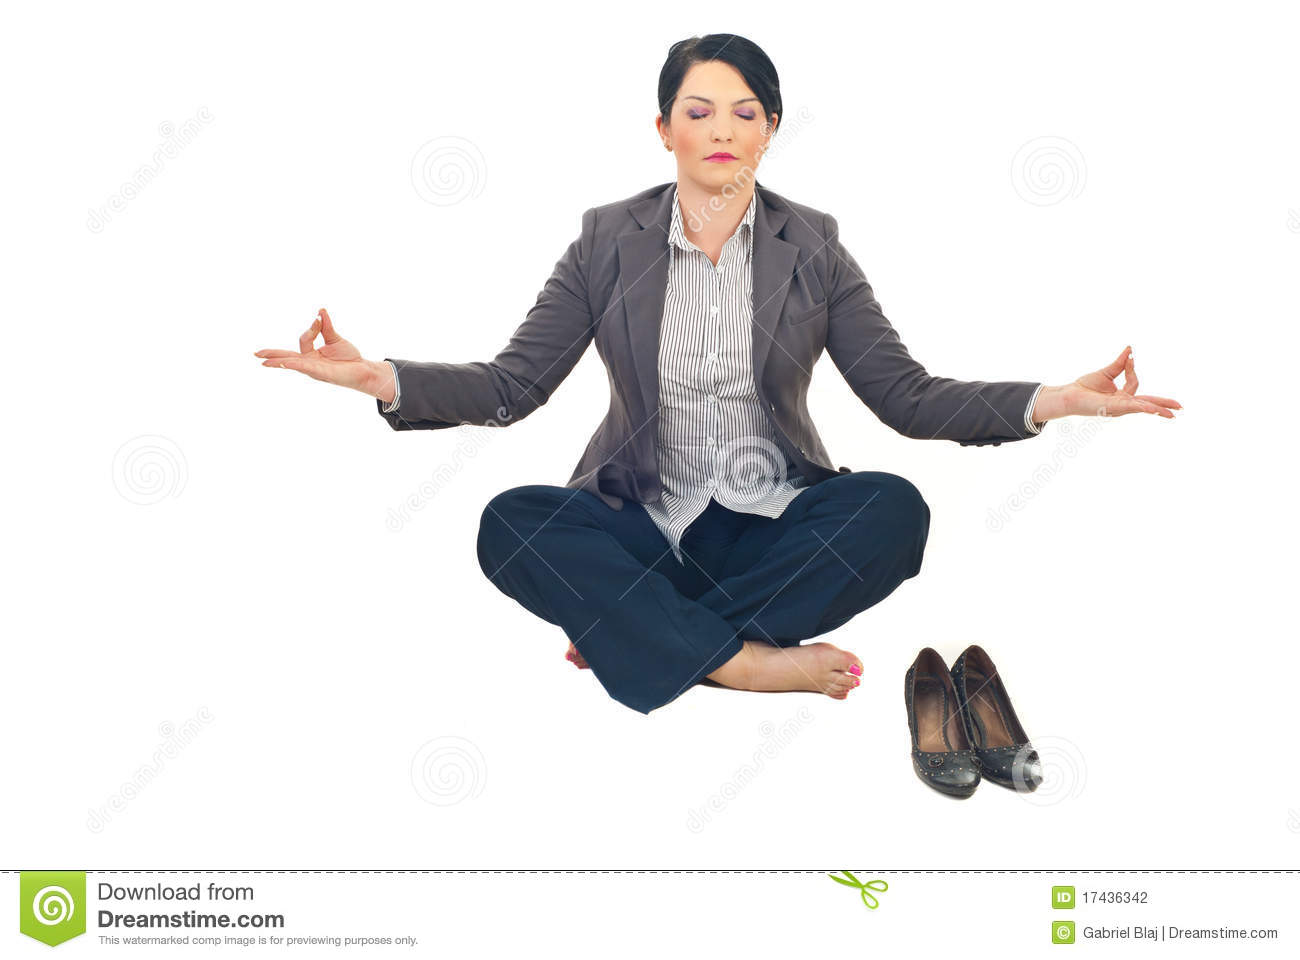 business-woman-doing-yoga-17436342.jpg